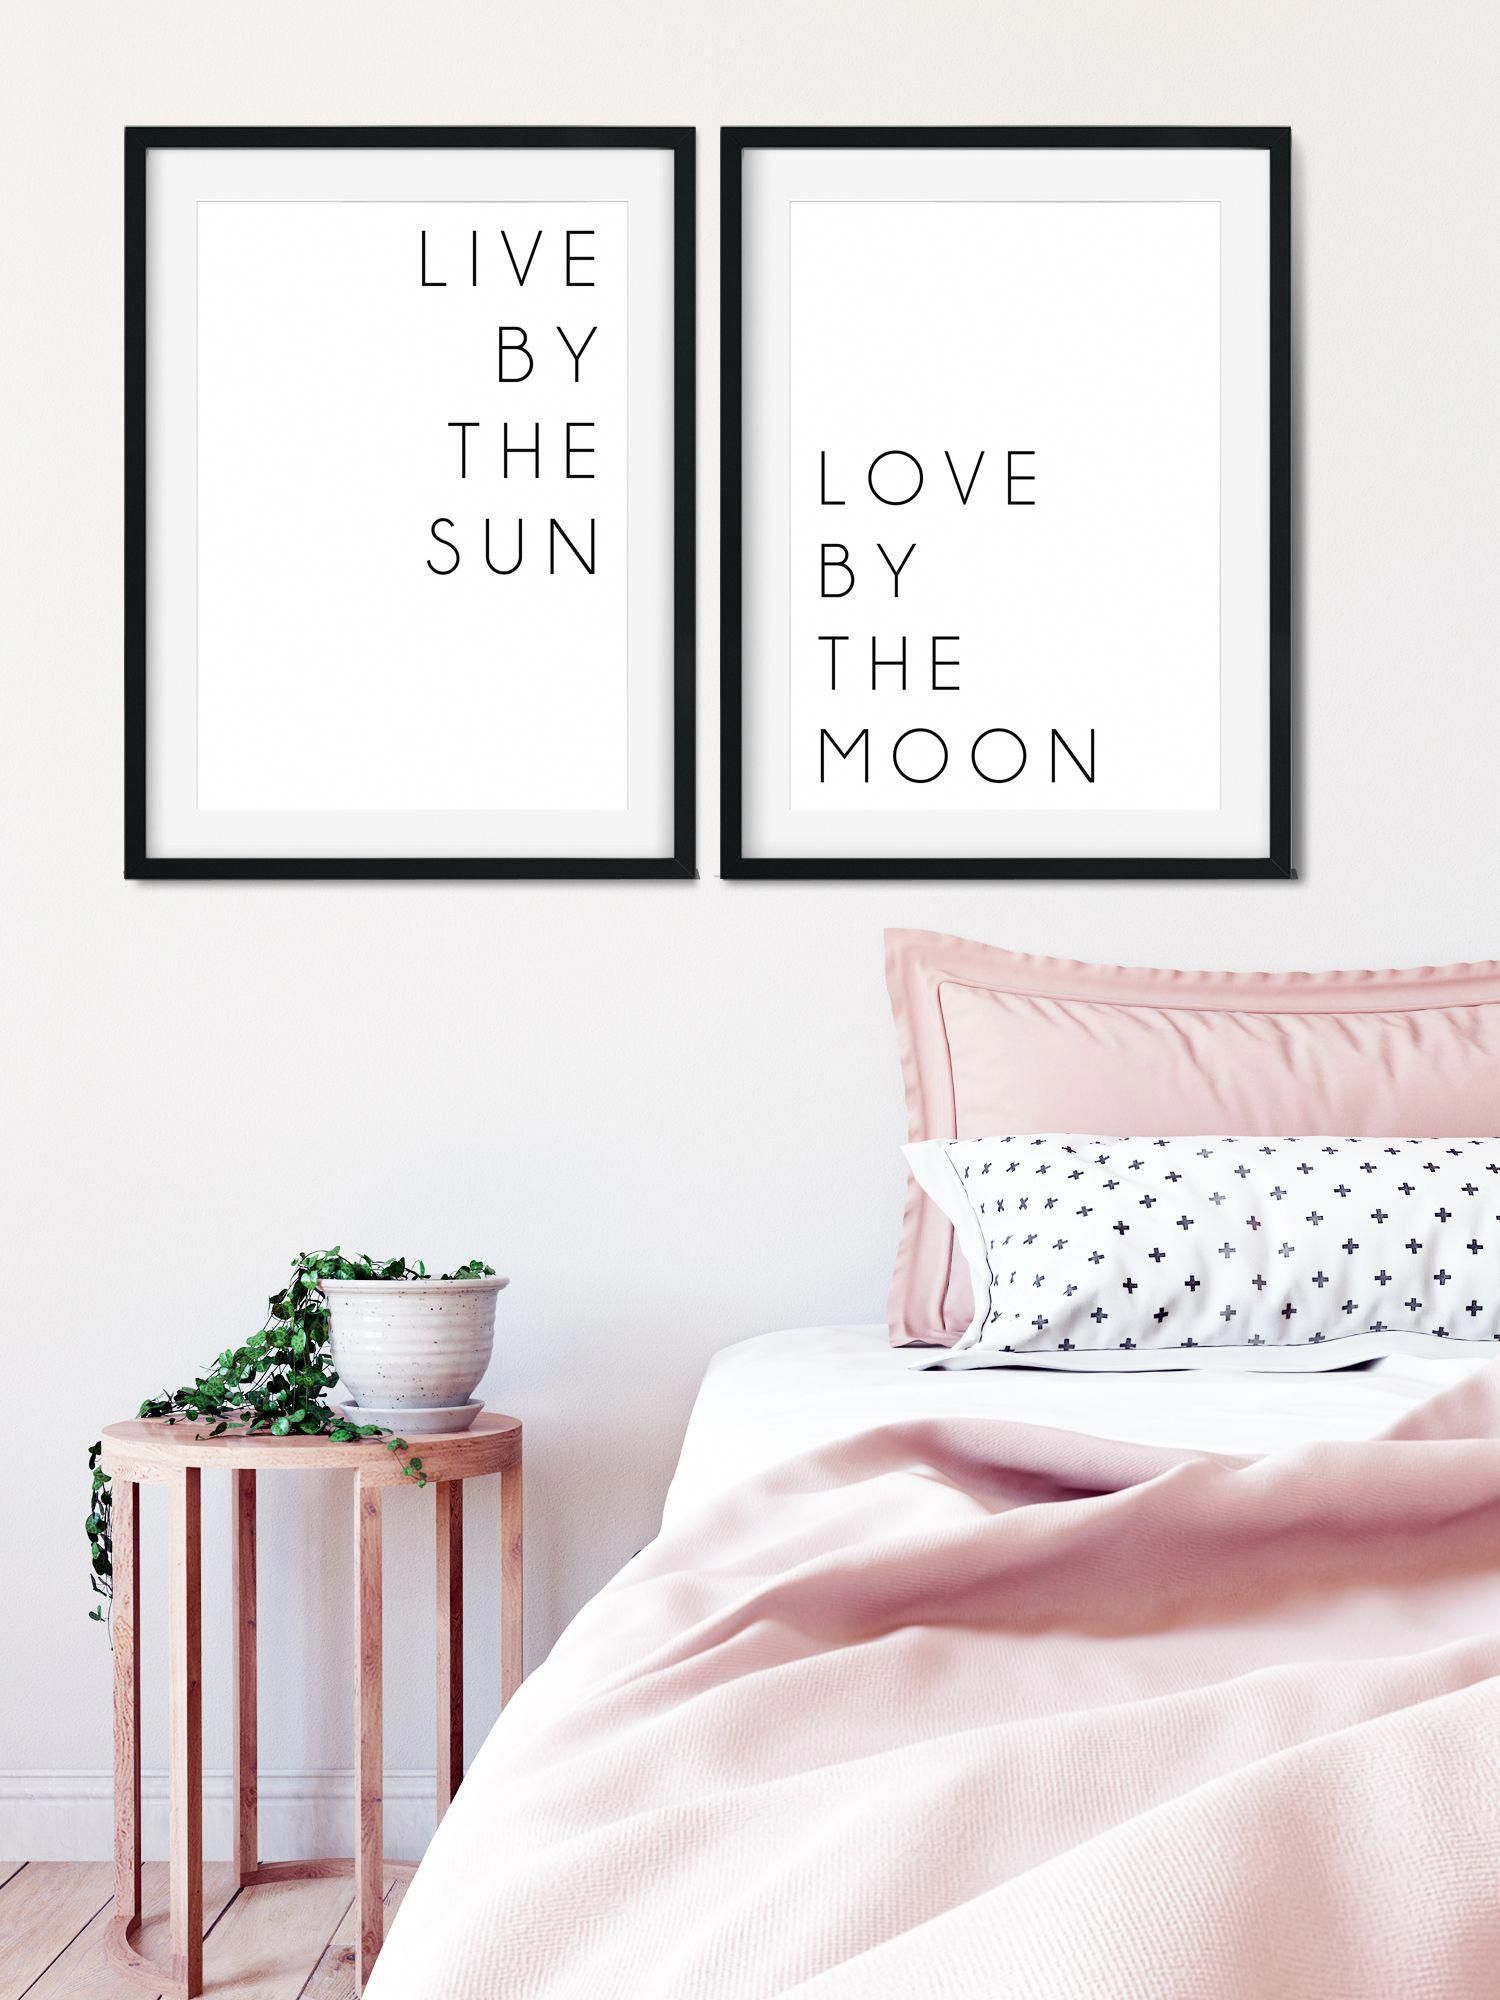 Posters For A Romantic Bedroom Design Bedroomcolors Romantic